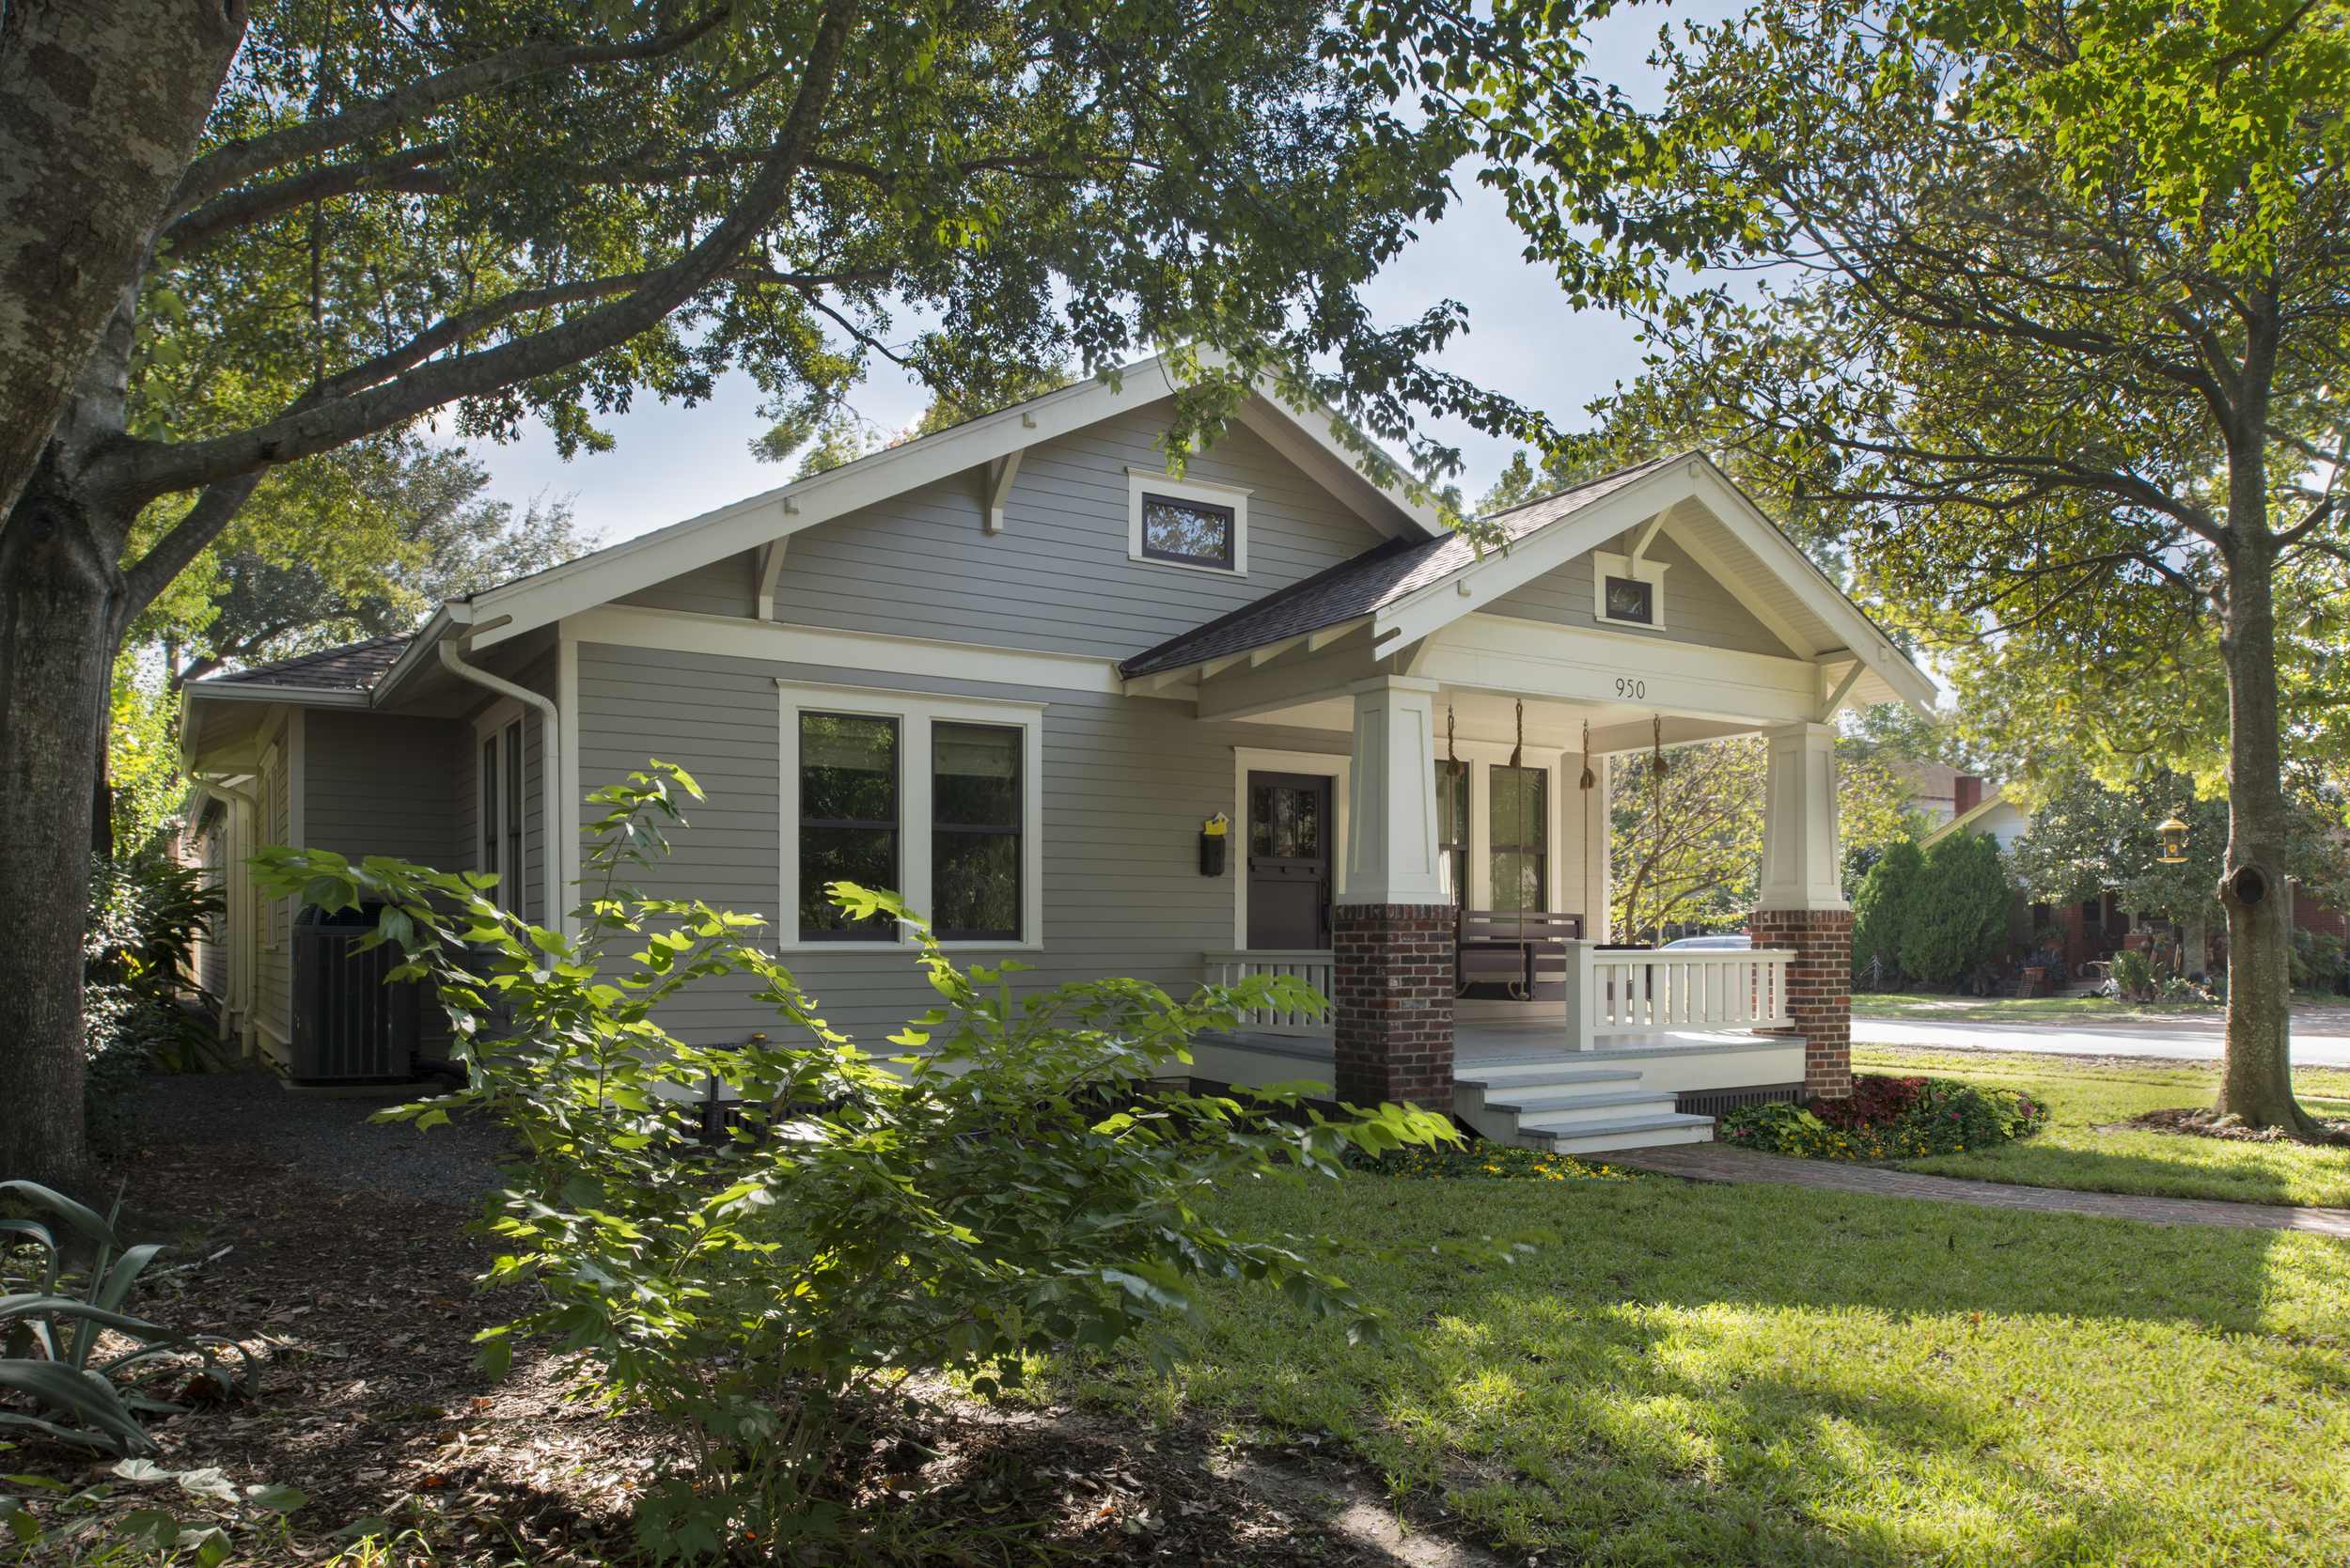 950 Redan: 1920 one-story duplex converted and expanded to single residence.